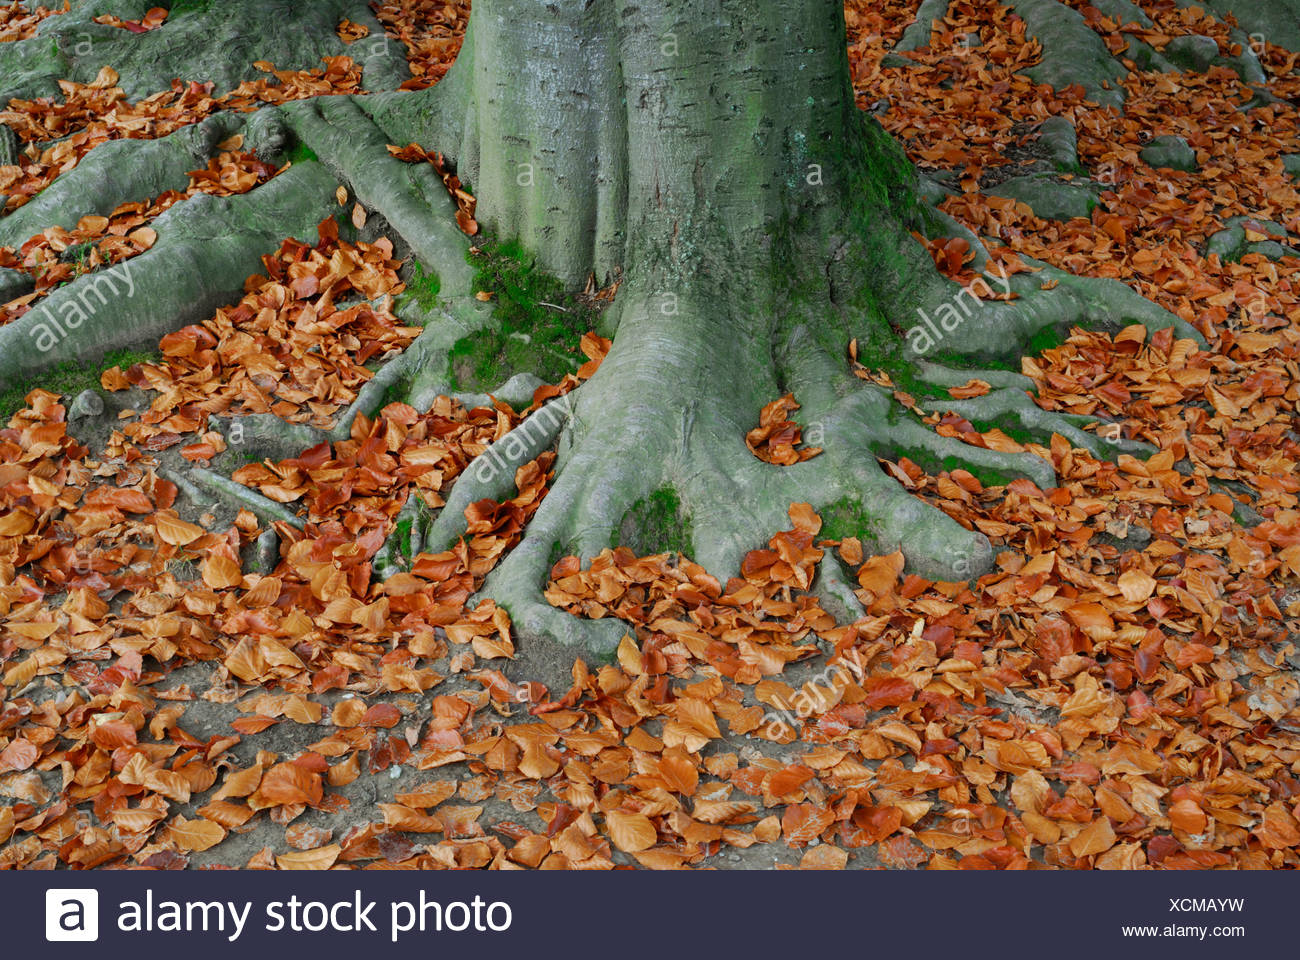 European Beech (Fagus sylvatica) roots surrounded by autumn foliage - Stock Image